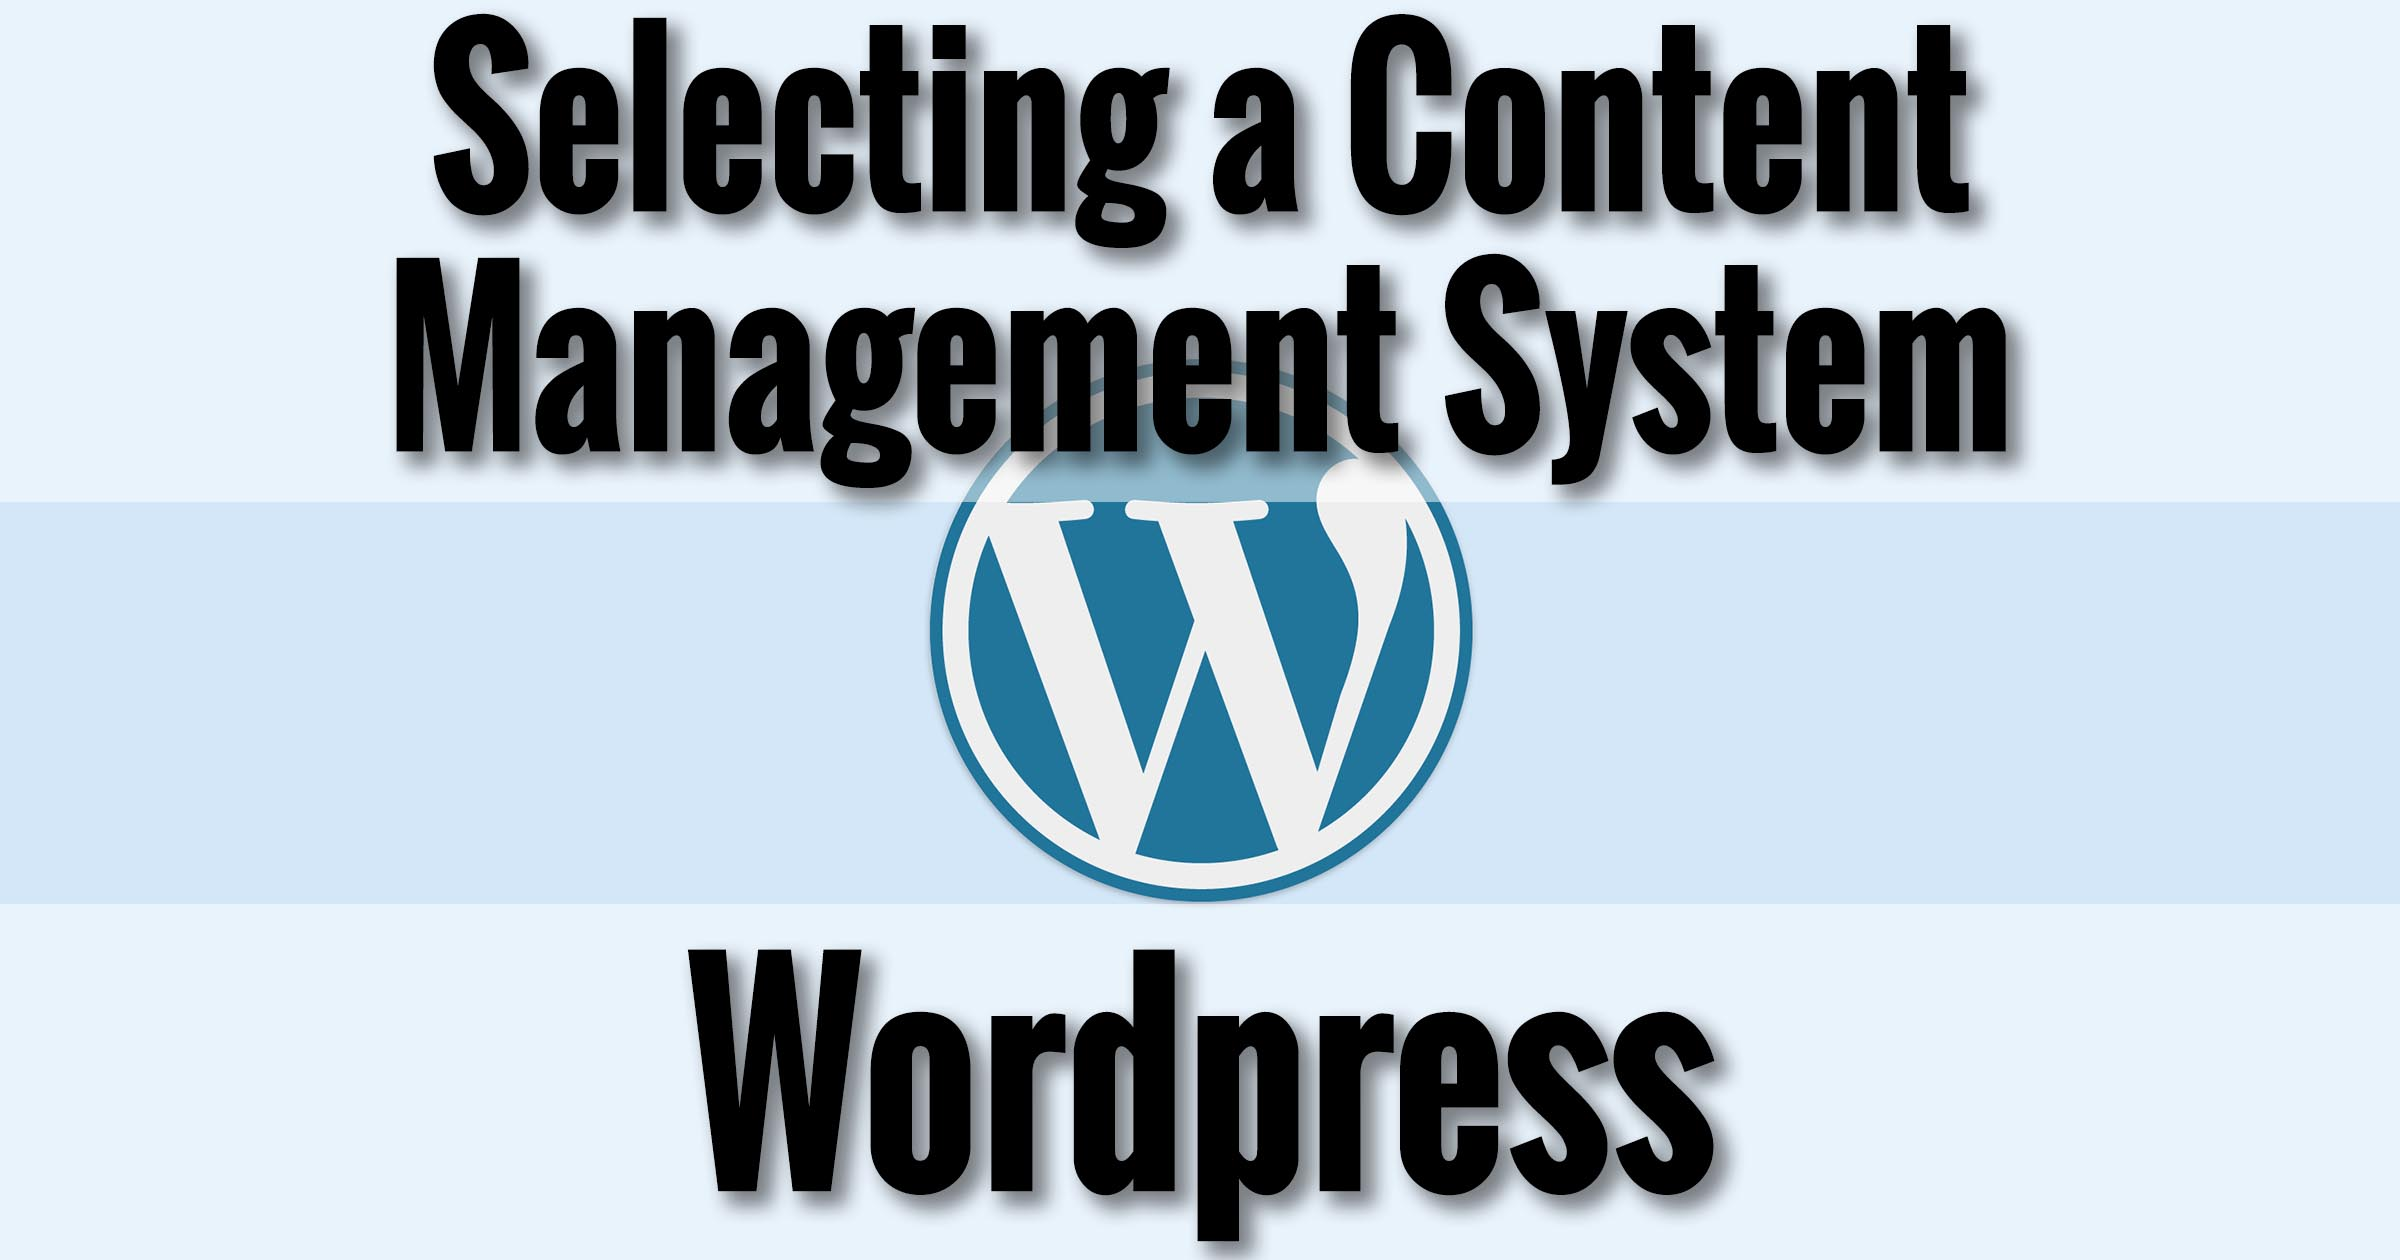 Selecting a Content Management System - Wordpress